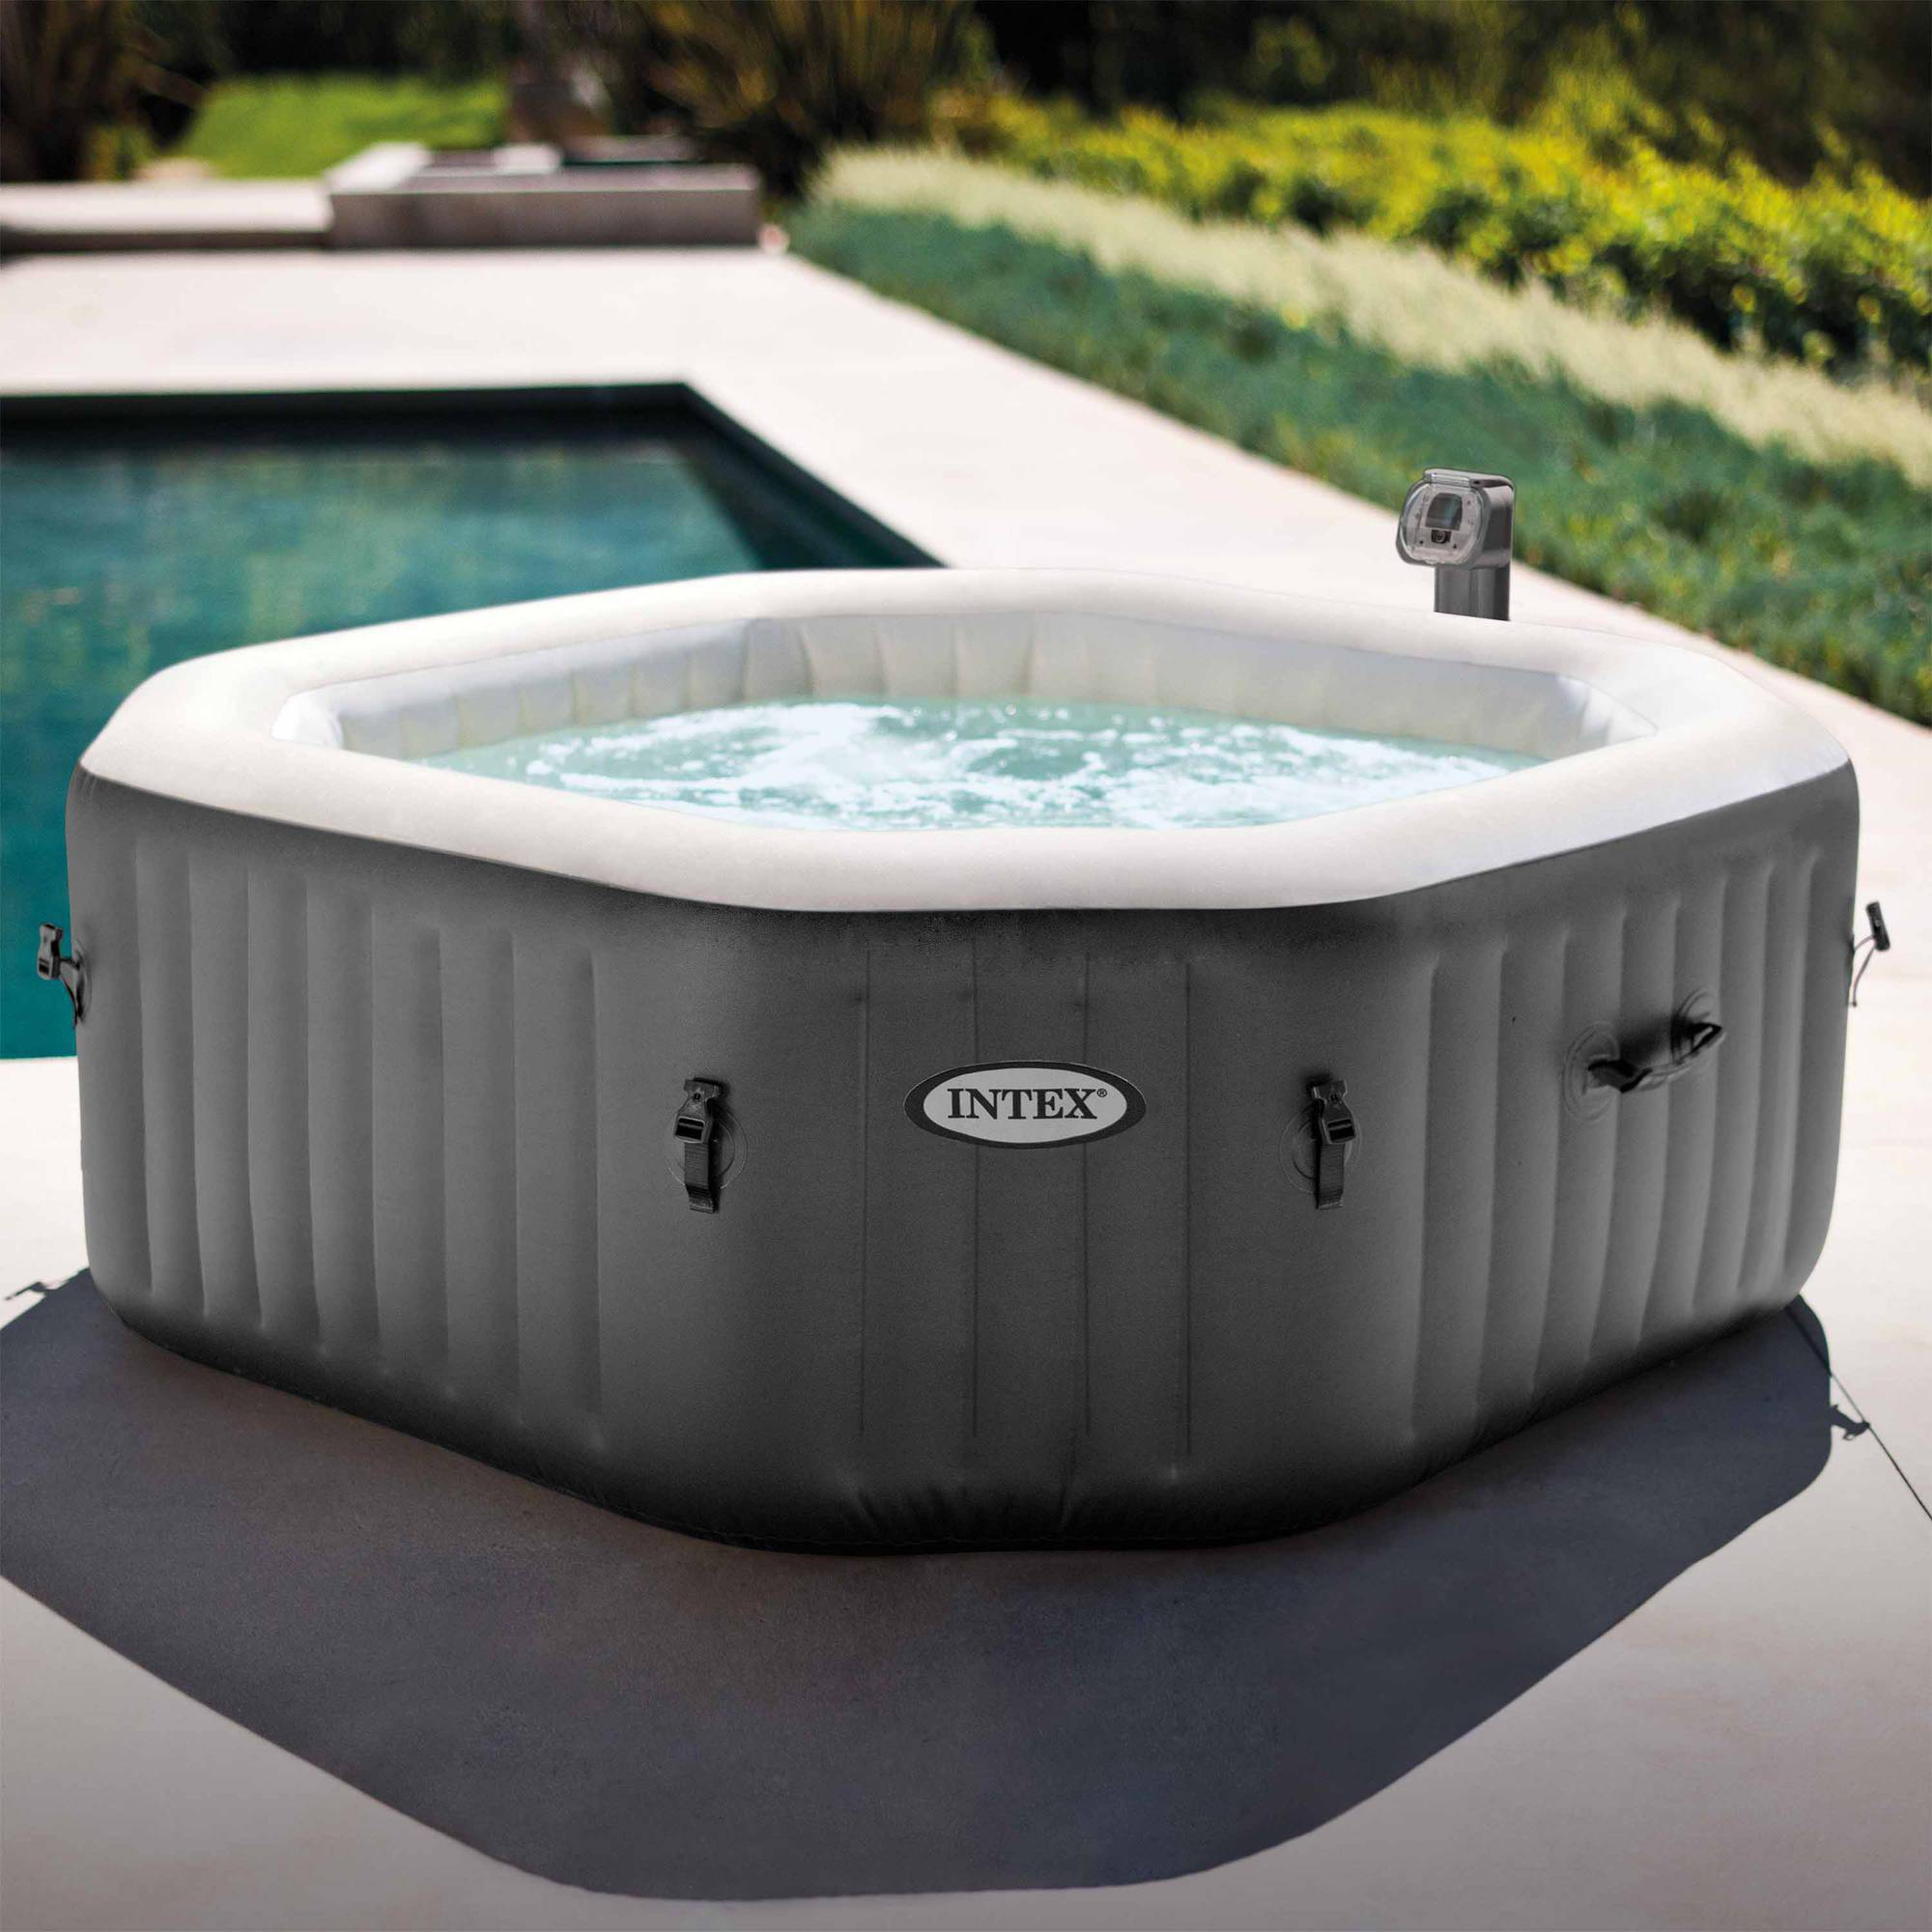 Intex 120 Bubble Jets 4 Person Octagonal Portable Inflatable Hot Tub Spa